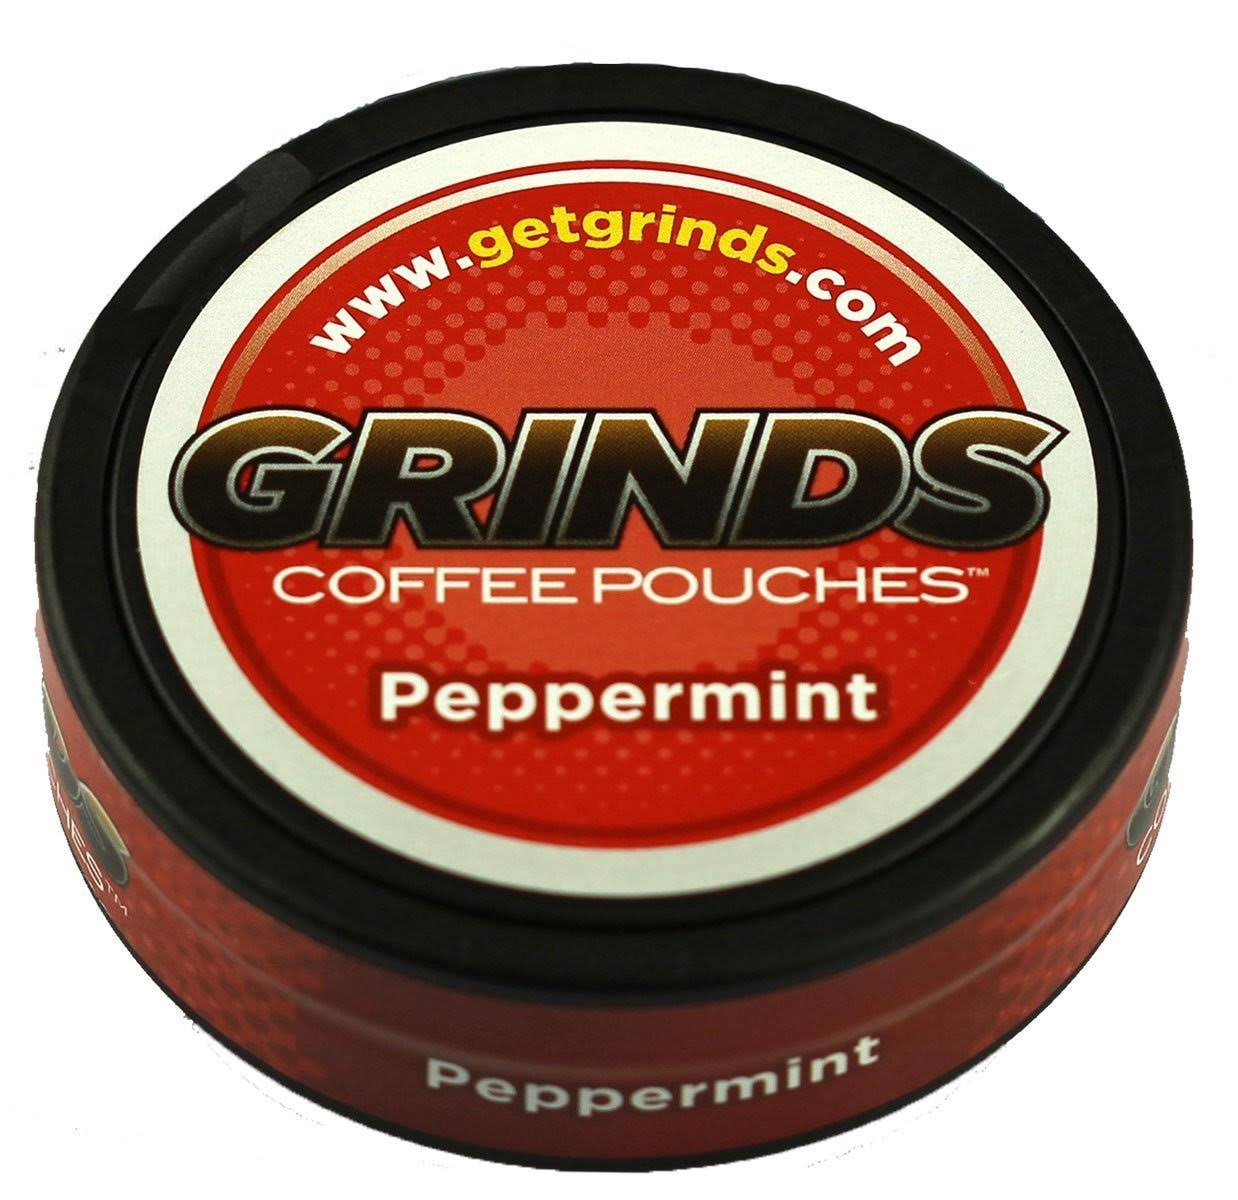 Grinds Coffee Pouches - Peppermint